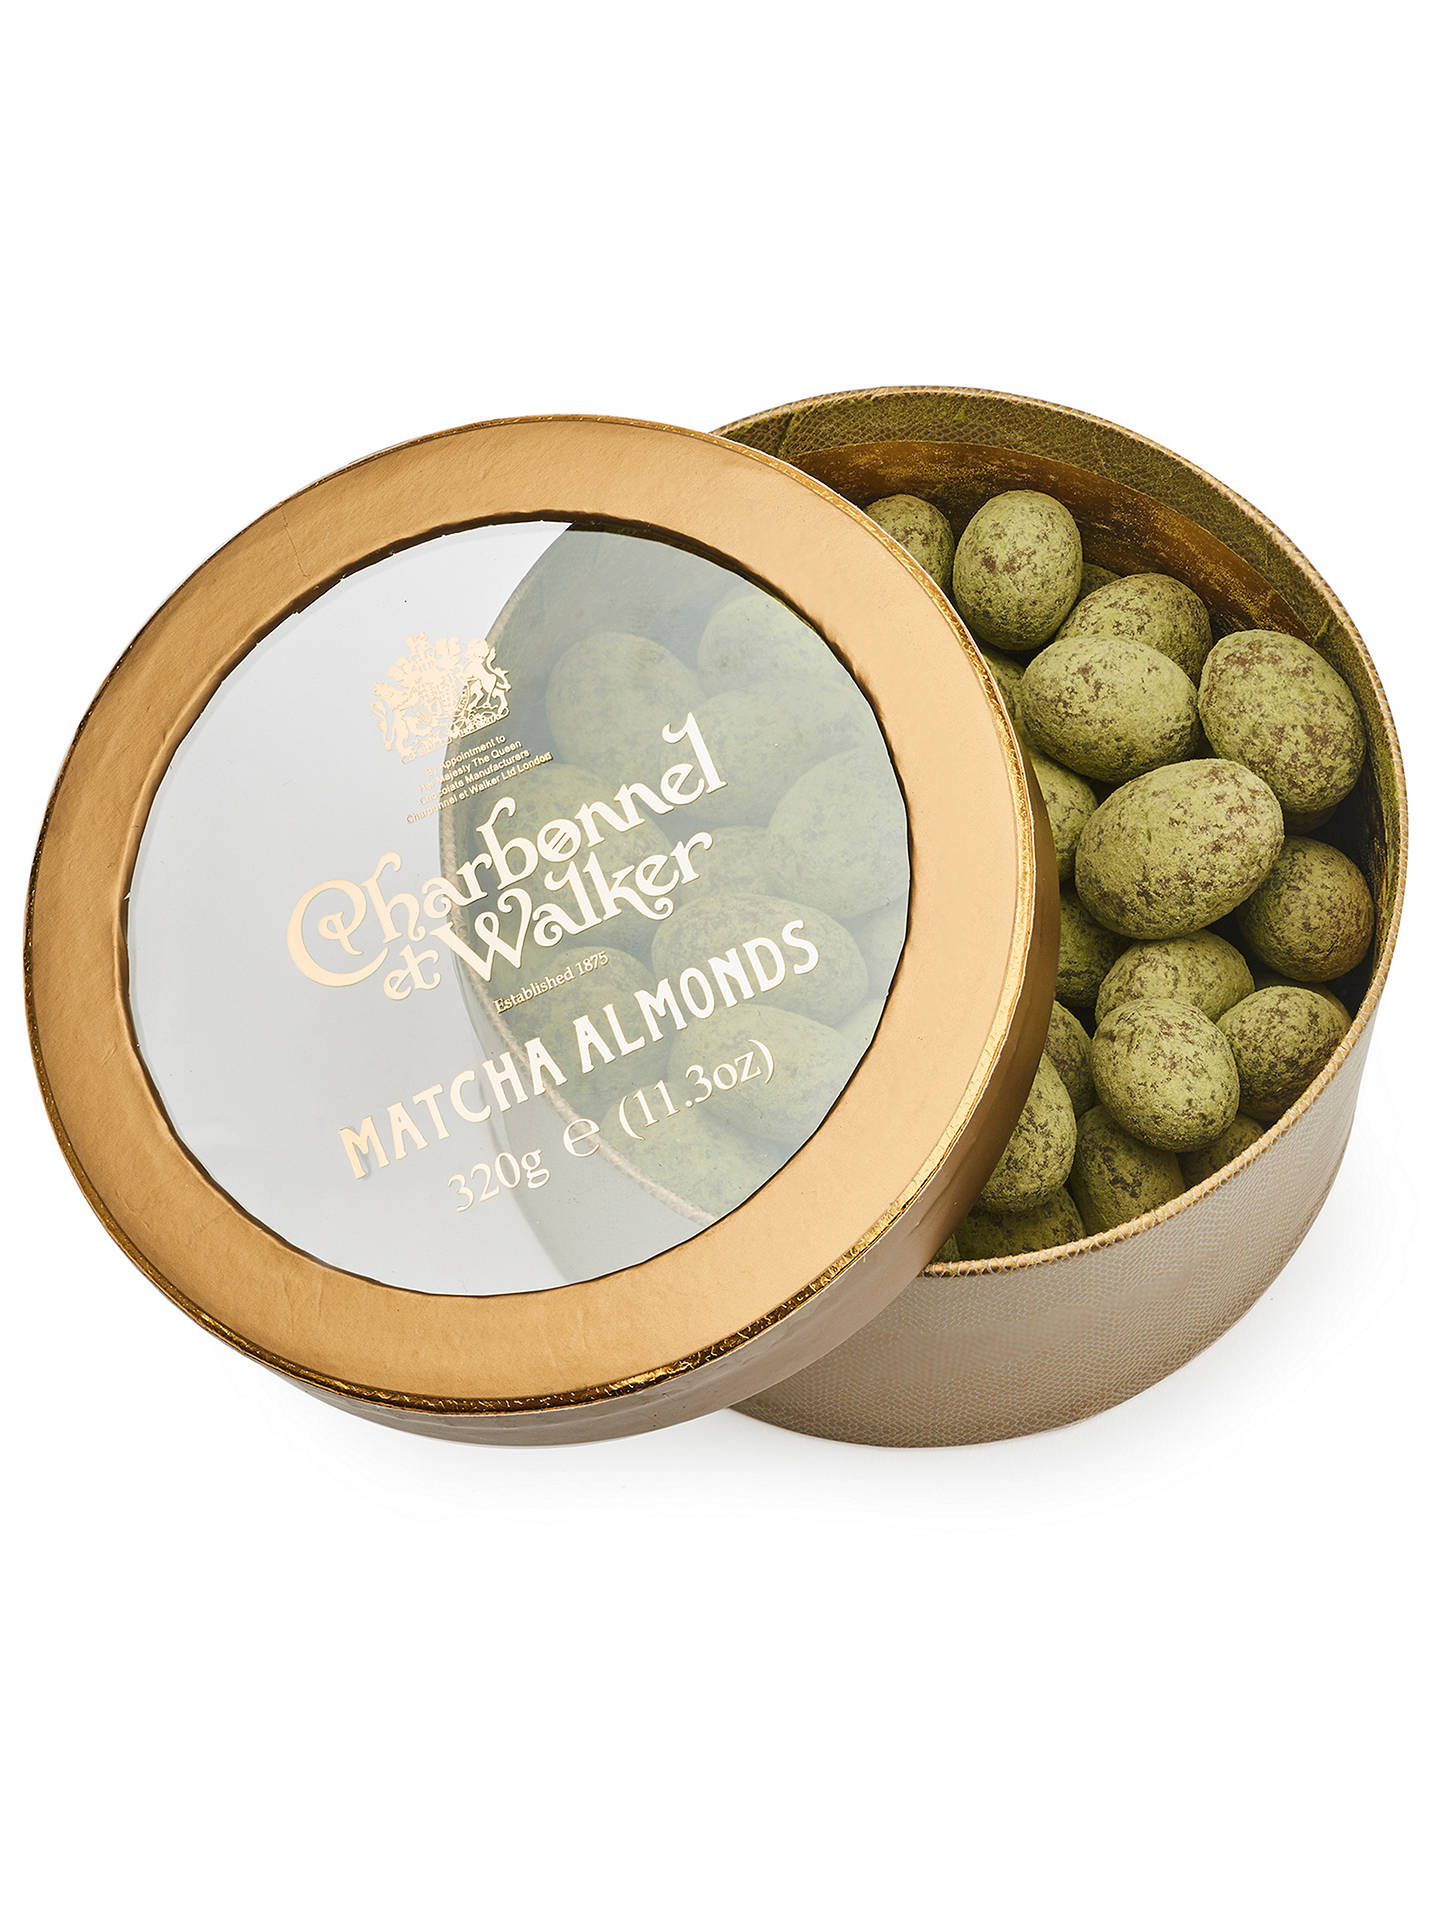 Buy Charbonnel et Walker Matcha Almonds, 320g Online at johnlewis.com